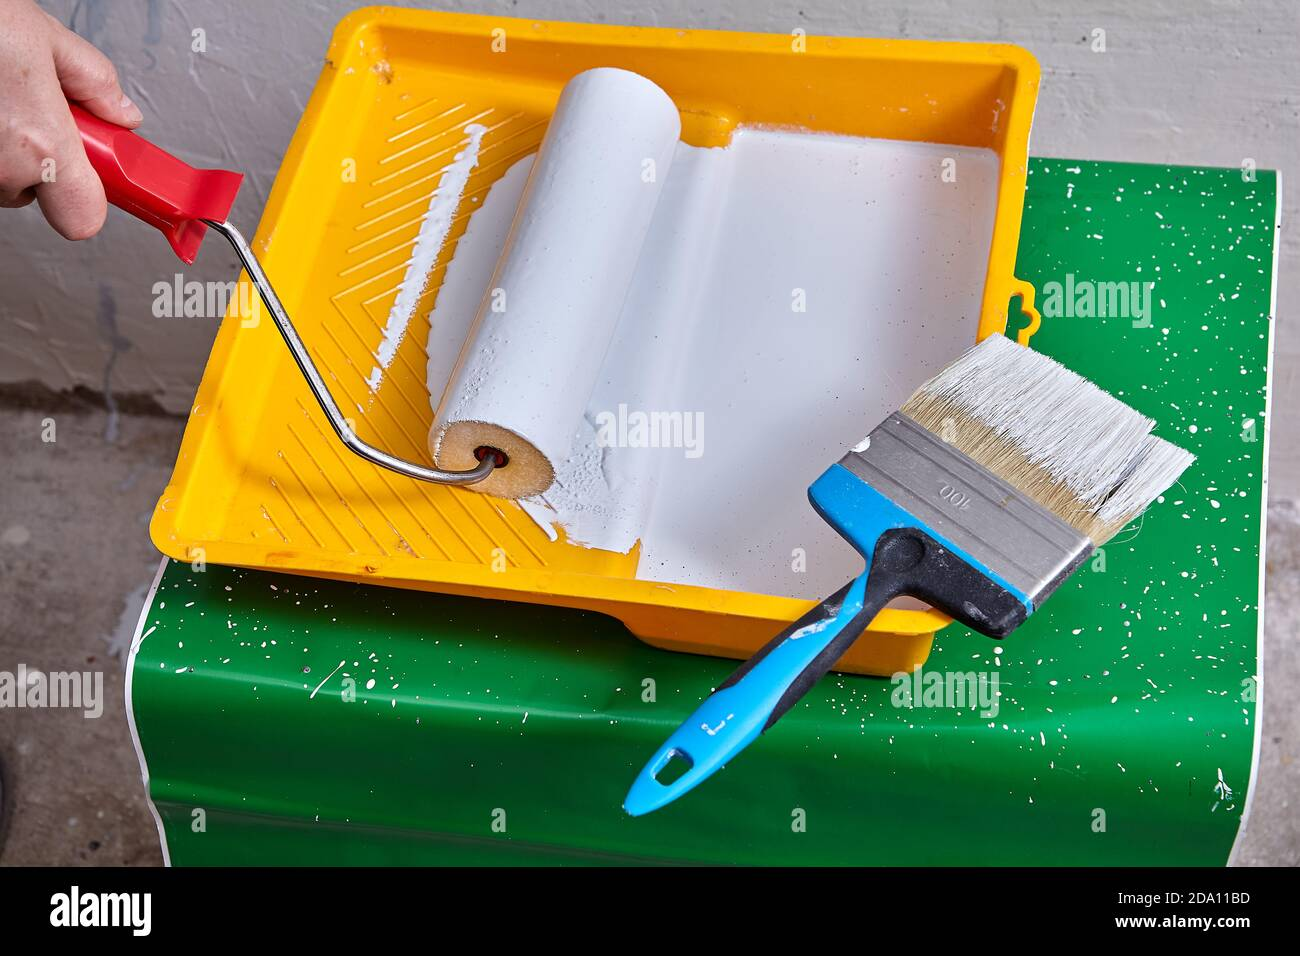 Construction painting supplies for home repair, paint roller and paintbrush into tray with dye. Stock Photo